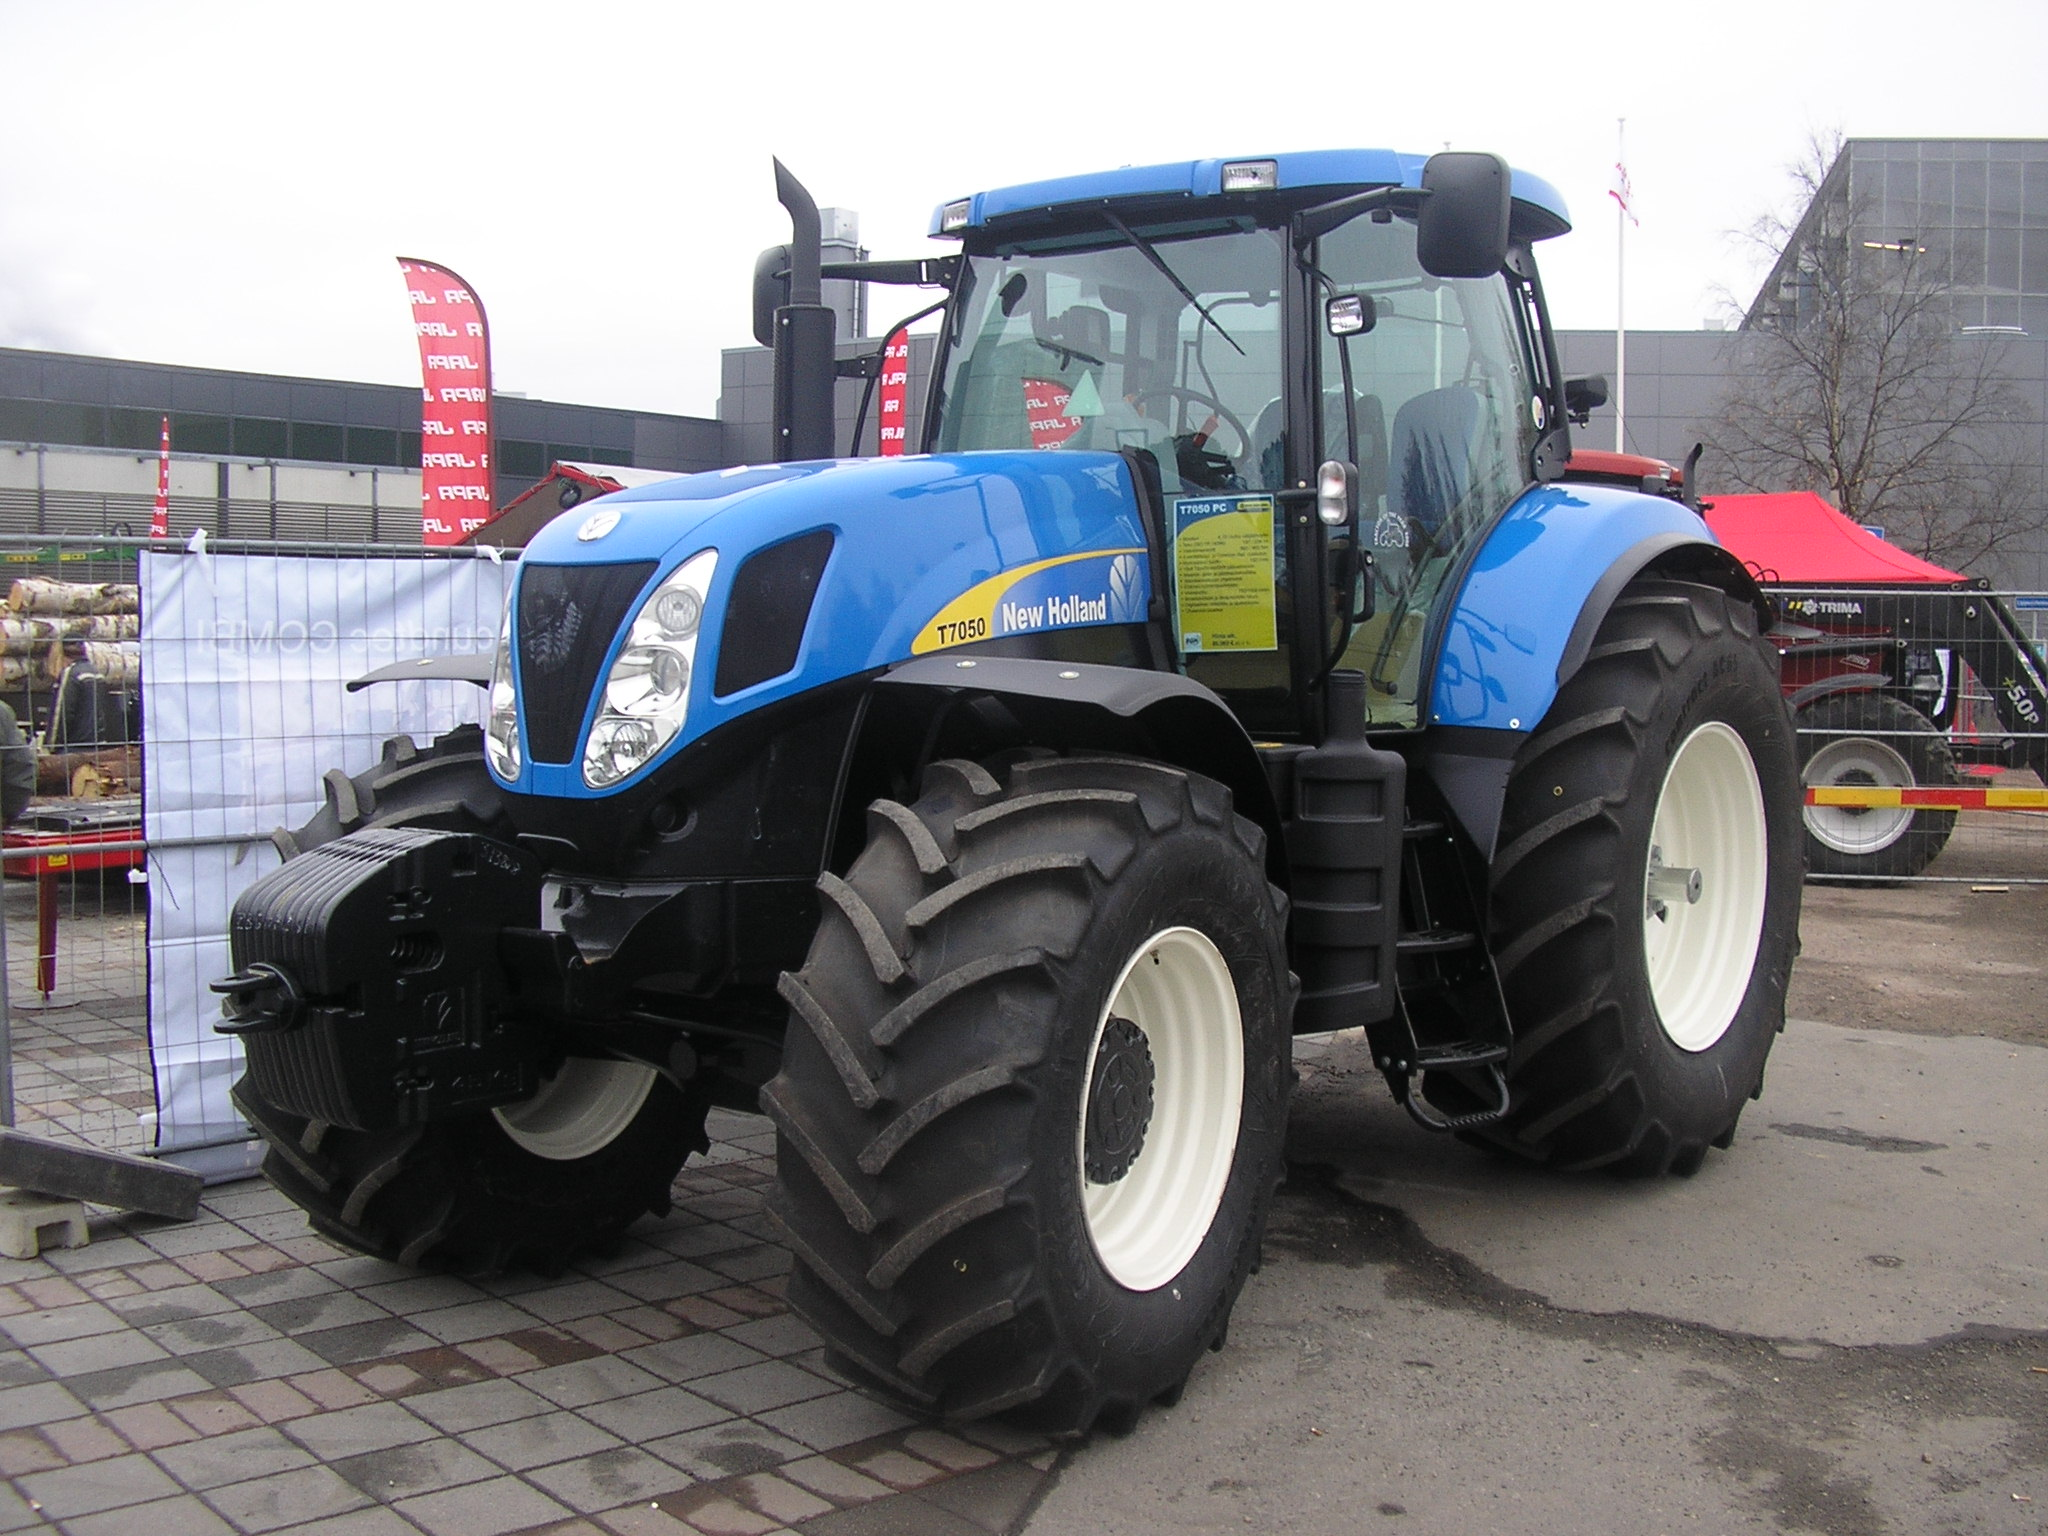 New Holland Tractor Dealers